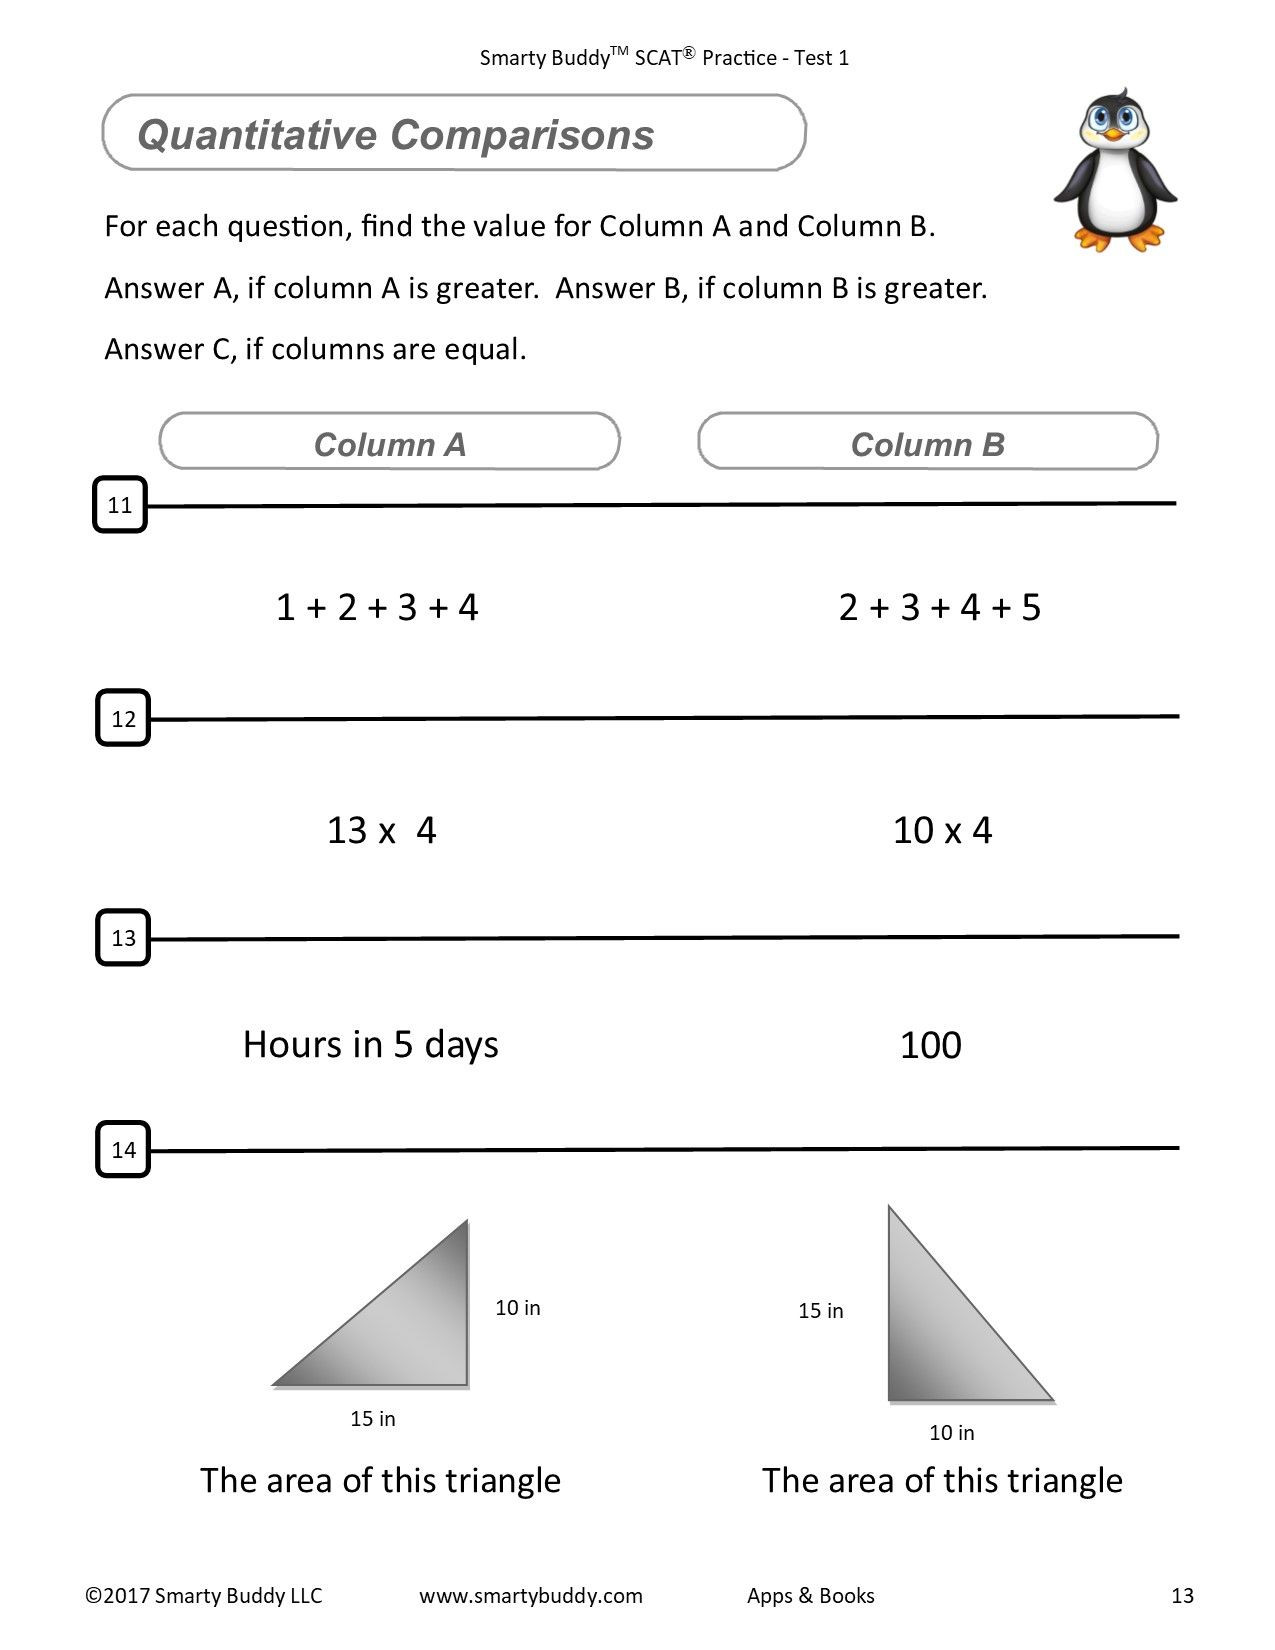 Gifted and Talented Math Worksheets Gifted and Talented Smarty Buddy ™ Scat Elementary Series